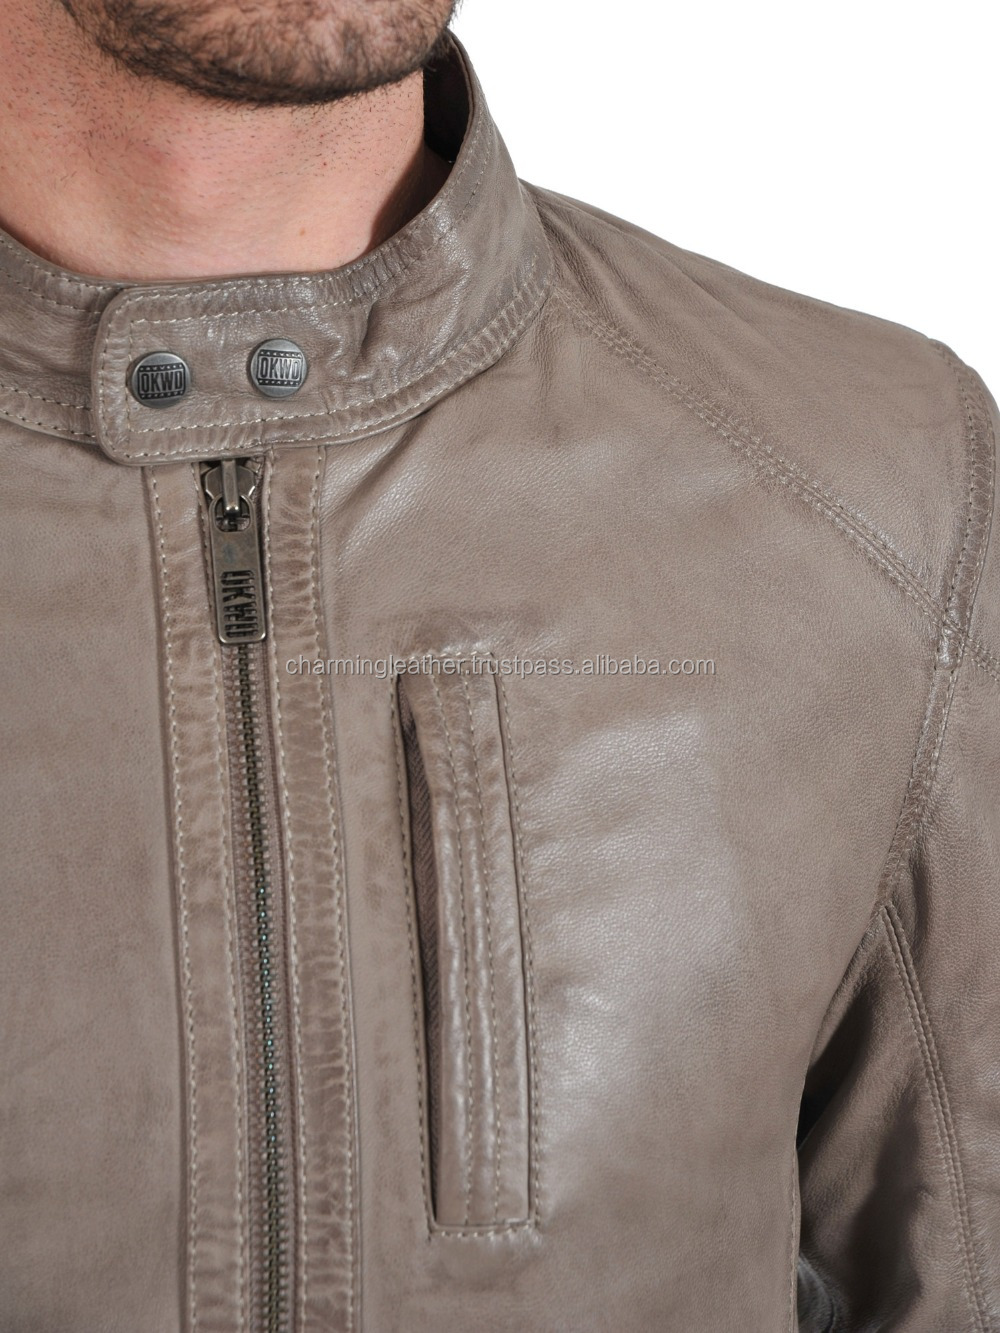 Stylish Collar Short Leather Jacket Mens 2015 New Style High Quality Made